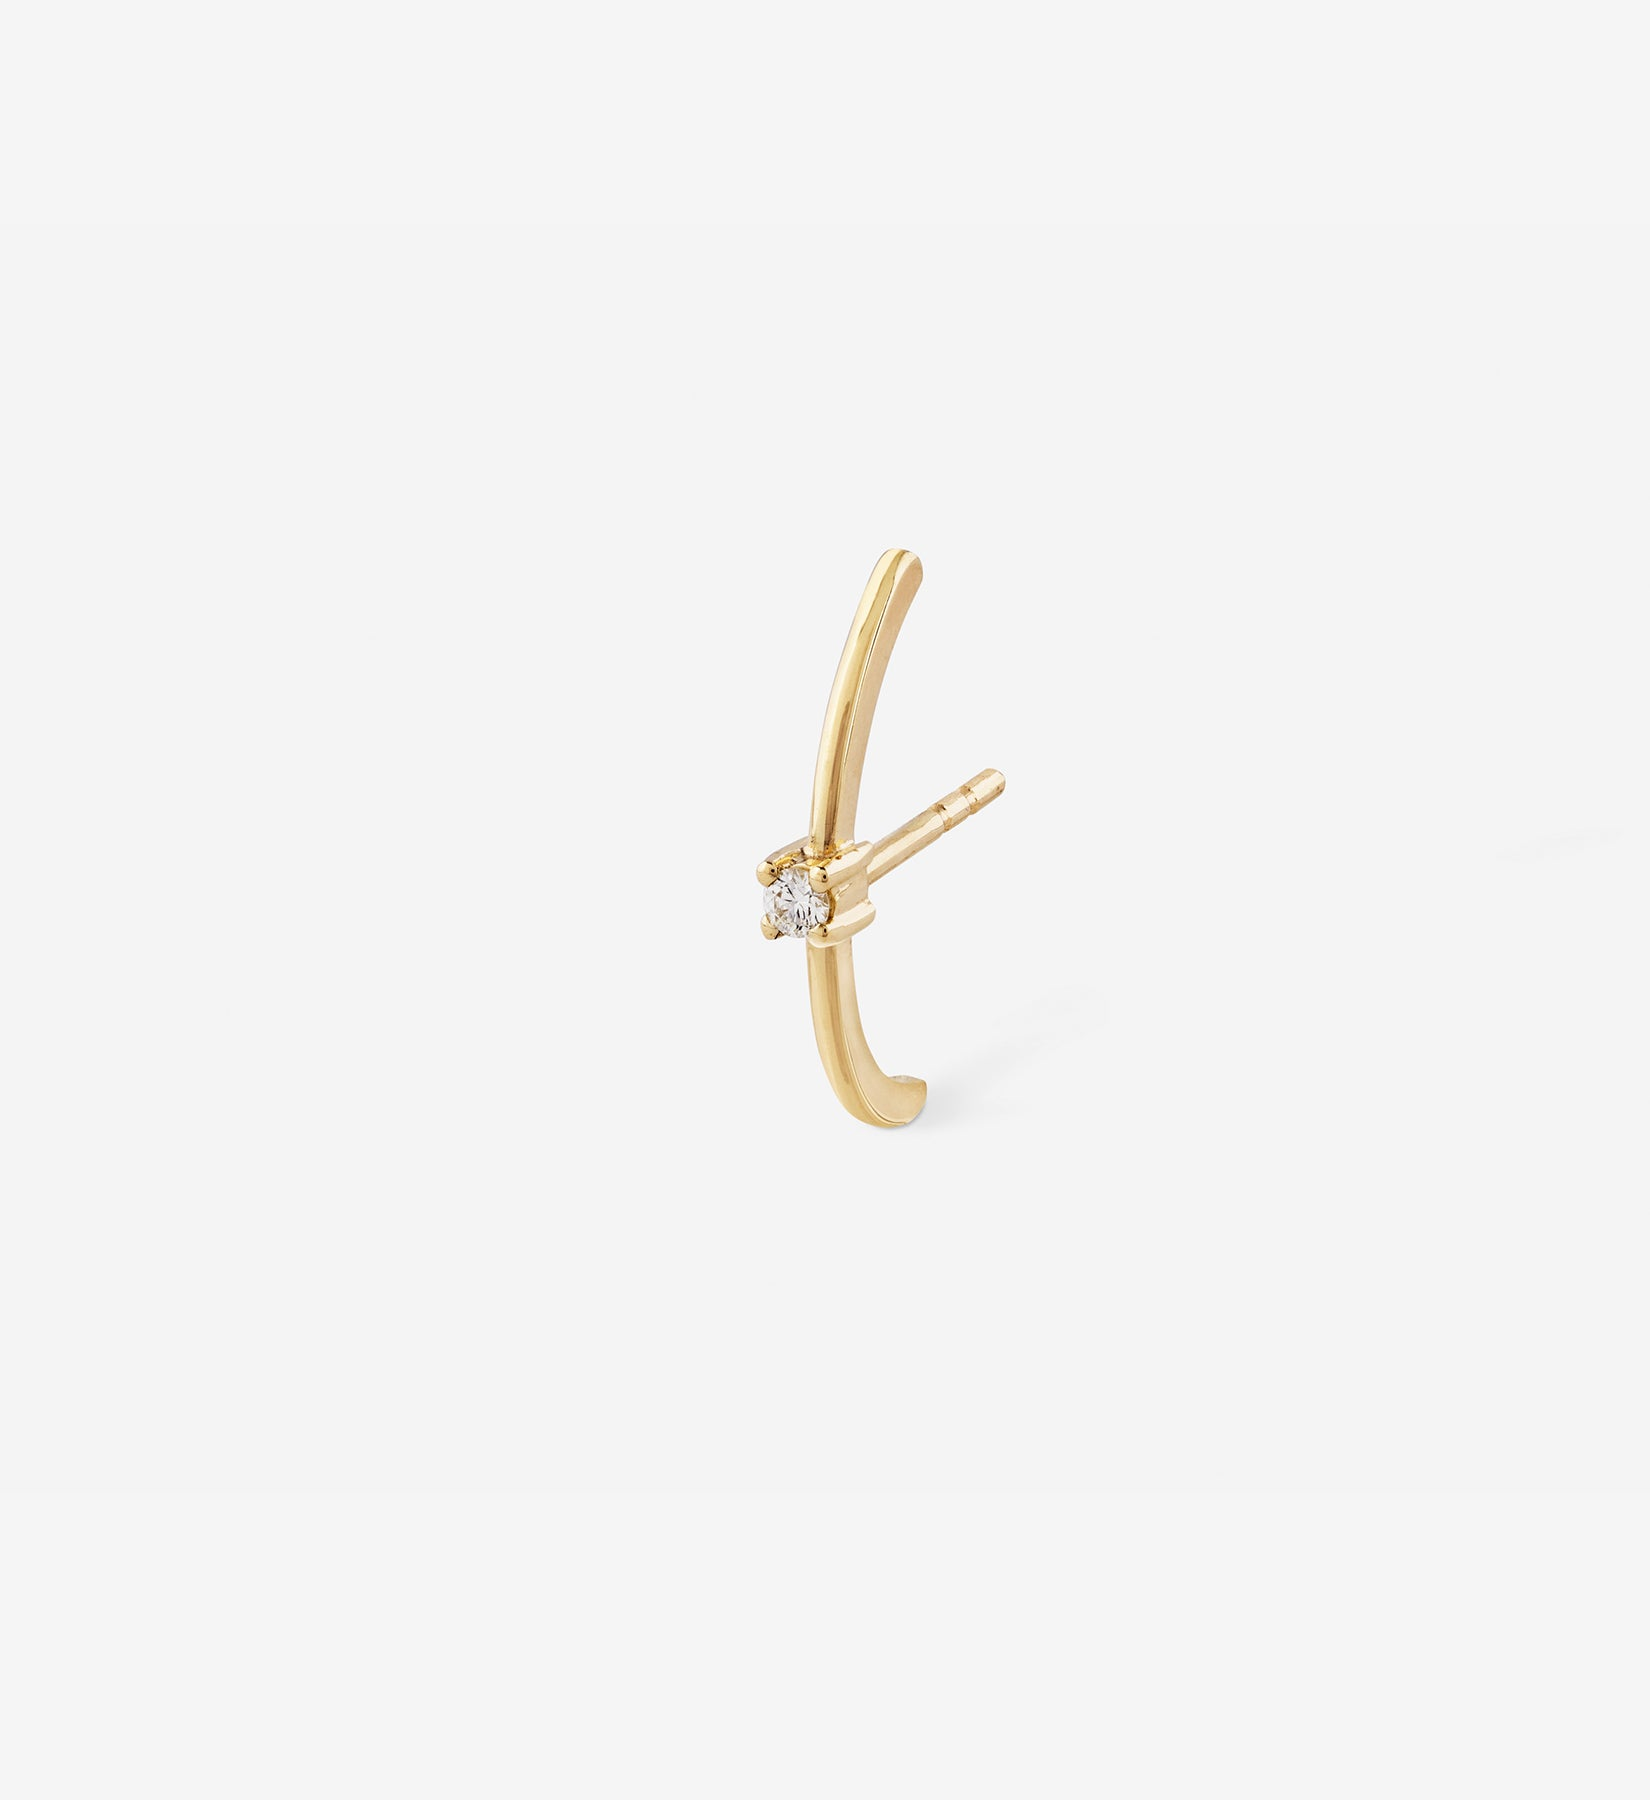 Diamond Earring 0.04 in 14K Gold - Single